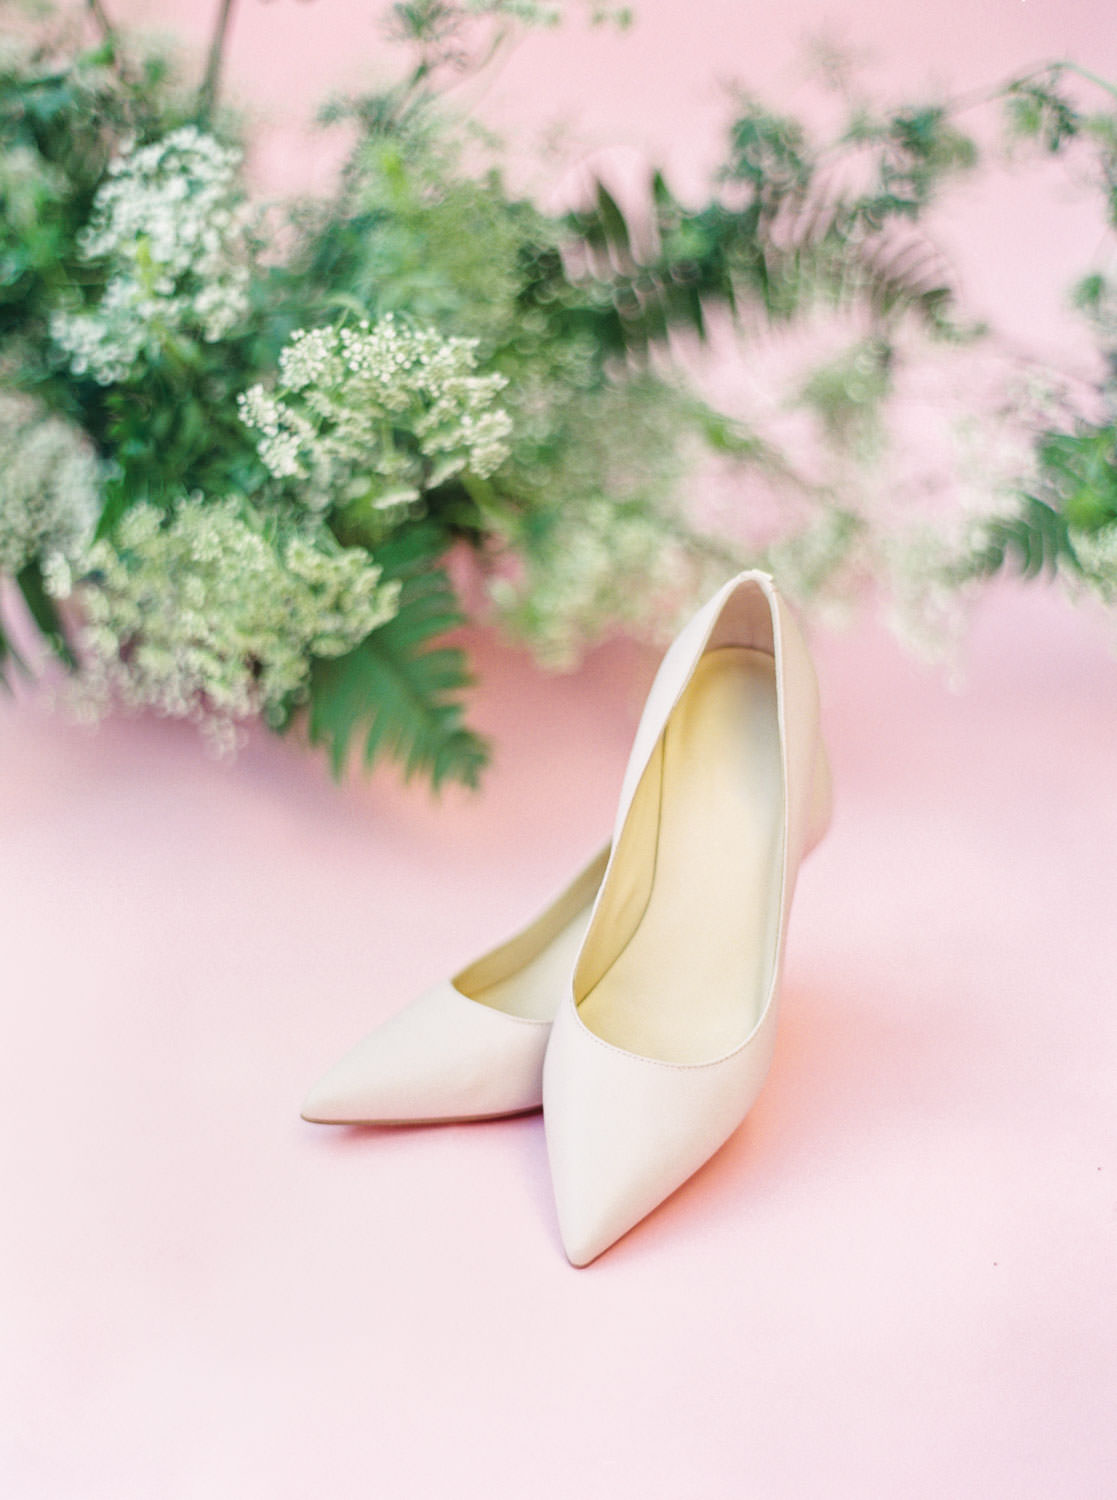 Blush wedding heels with ferns, Pink backdrop wedding editorial on medium format Contax 645 Fuji 400h film by Cavin Elizabeth Photography